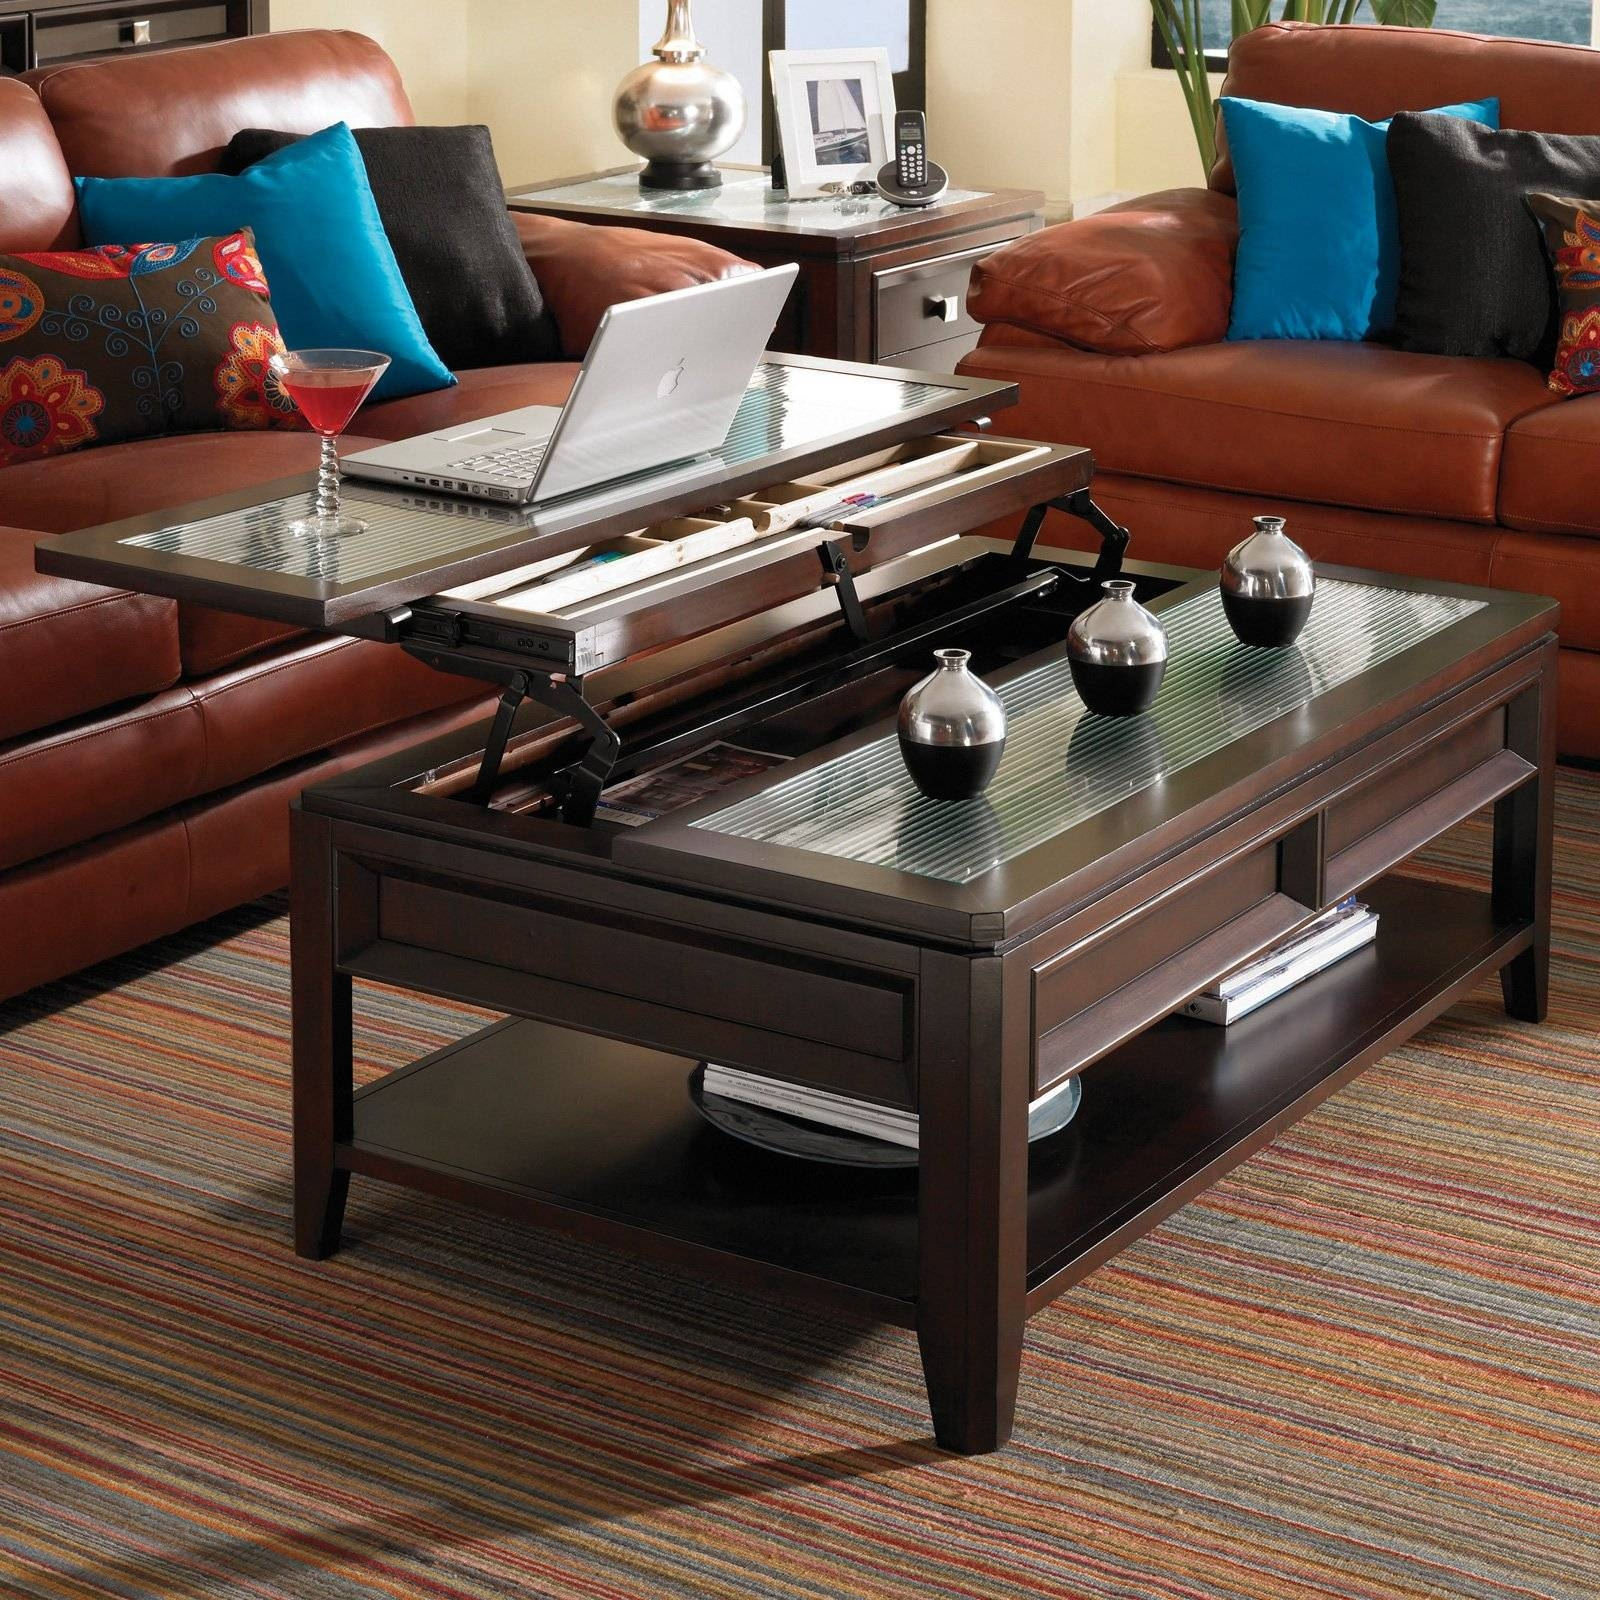 Coffee Table With Lift Up Lid - Lift Up Coffee Table As A Unique intended for Raisable Coffee Tables (Image 7 of 30)